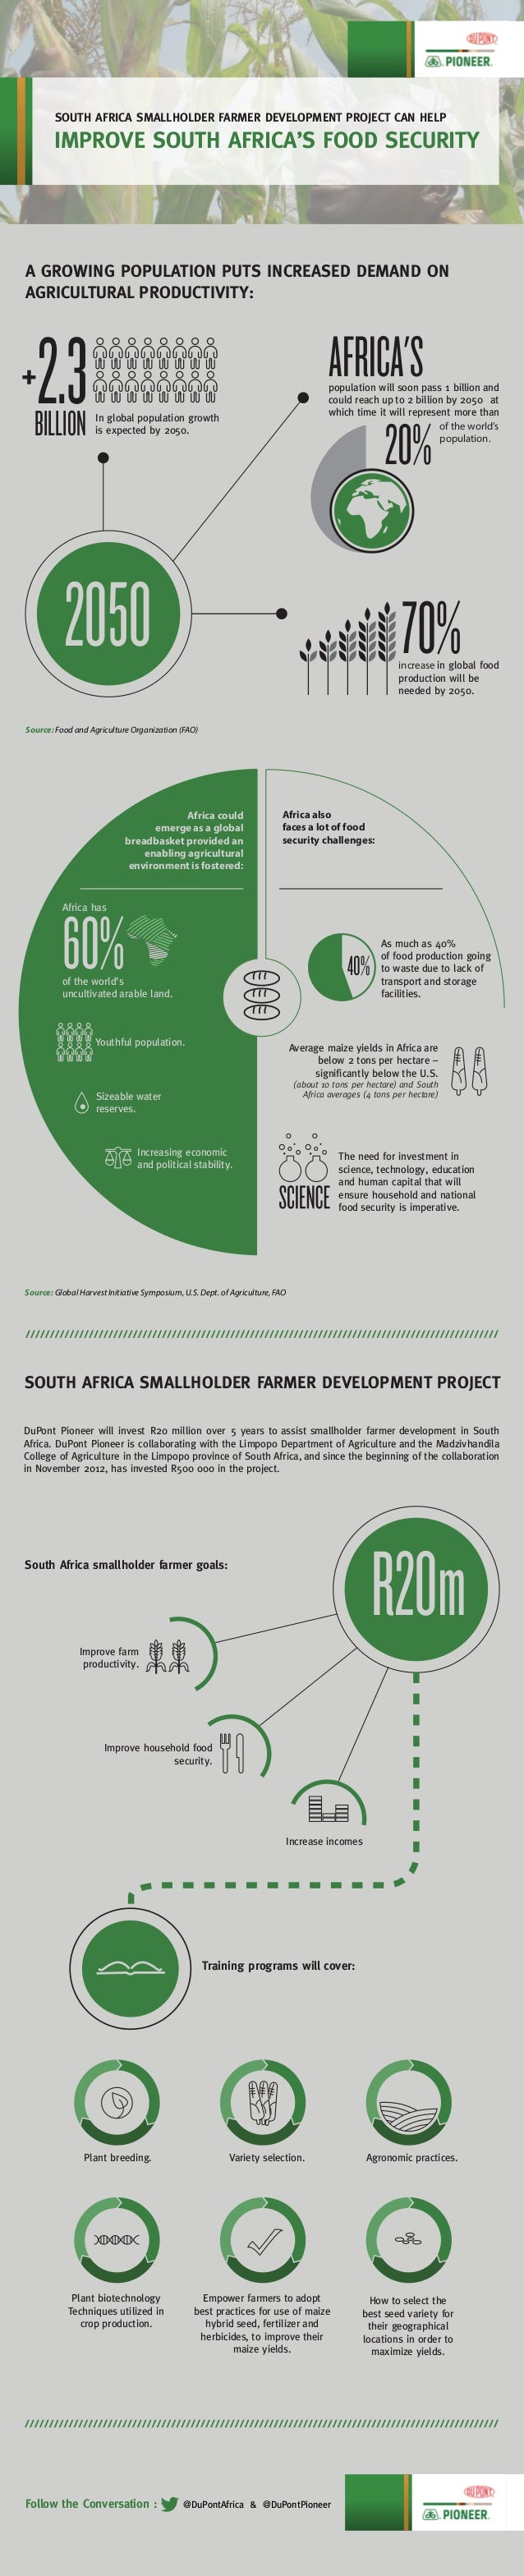 A GROWING POPULATION PUTS INCREASED DEMAND ON AGRICULTURAL PRODUCTIVITY: Improve farm productivity. SOUTH AFRICA SMALLHOLD...